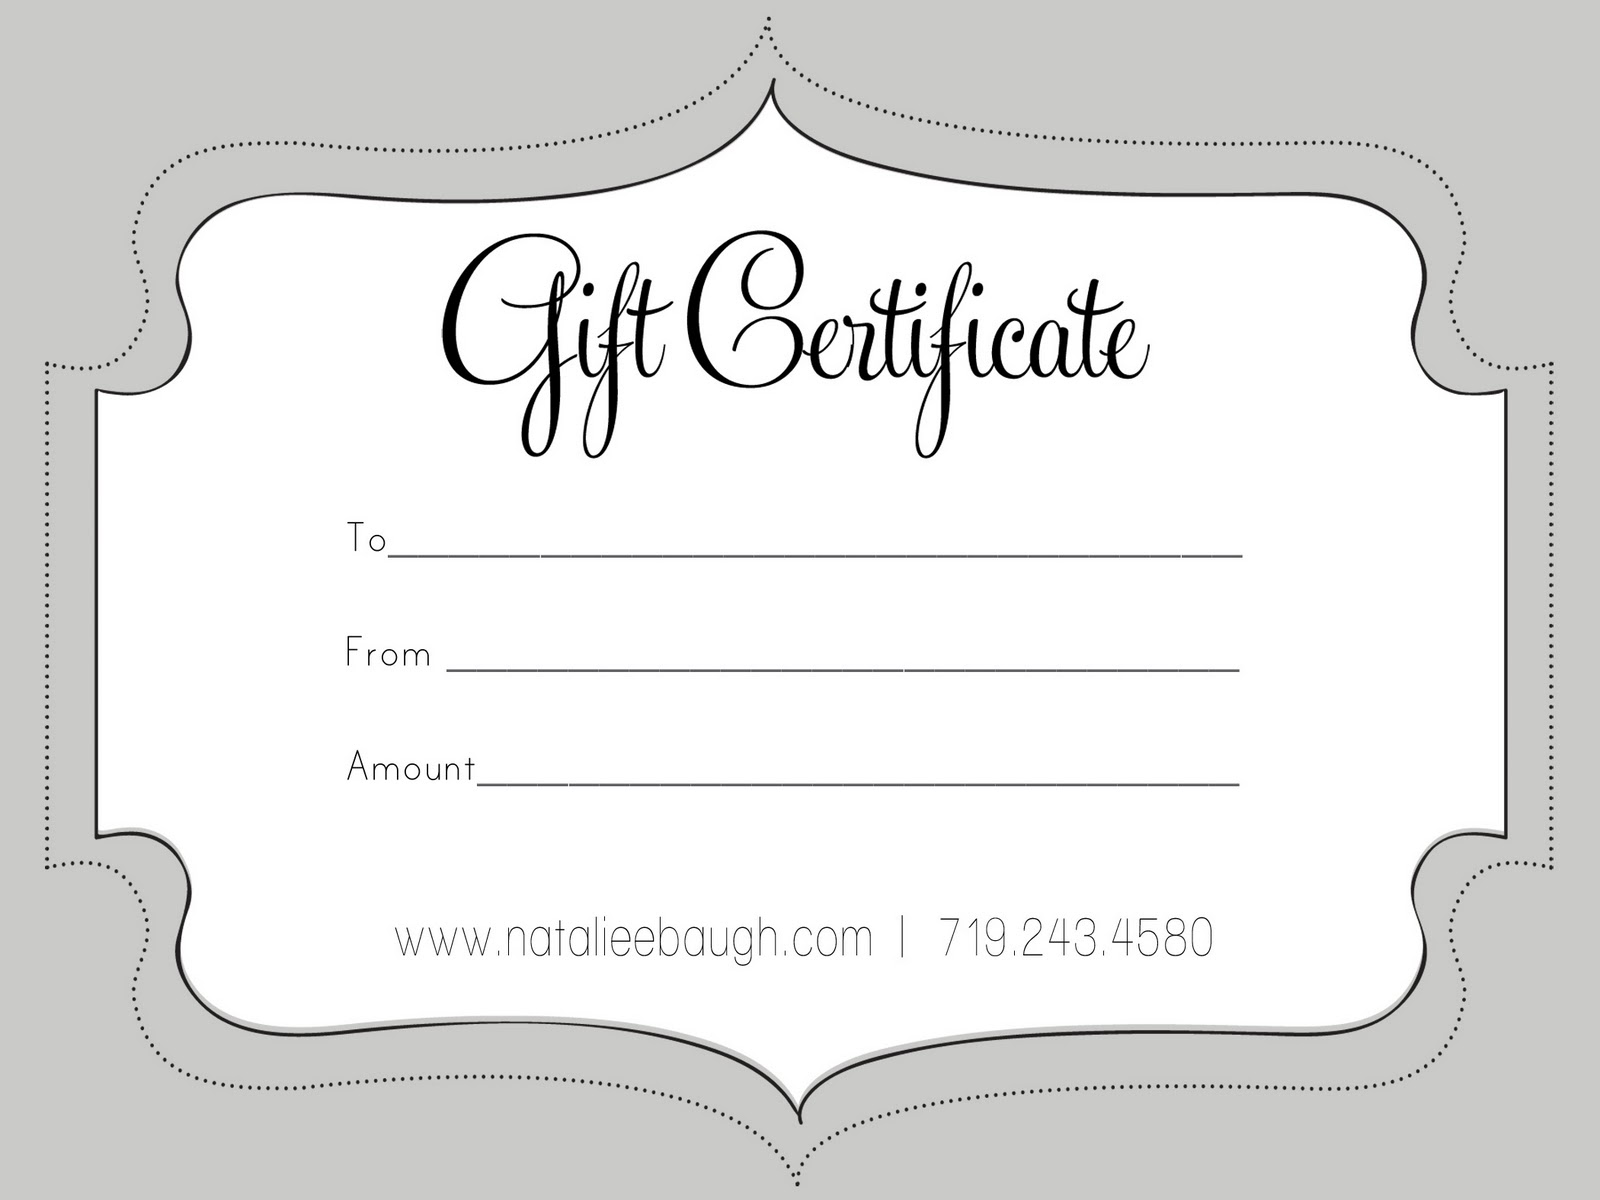 gift certificate templates to resume builder gift certificate templates to 11 gift certificate templates microsoft word templates gift certificate template